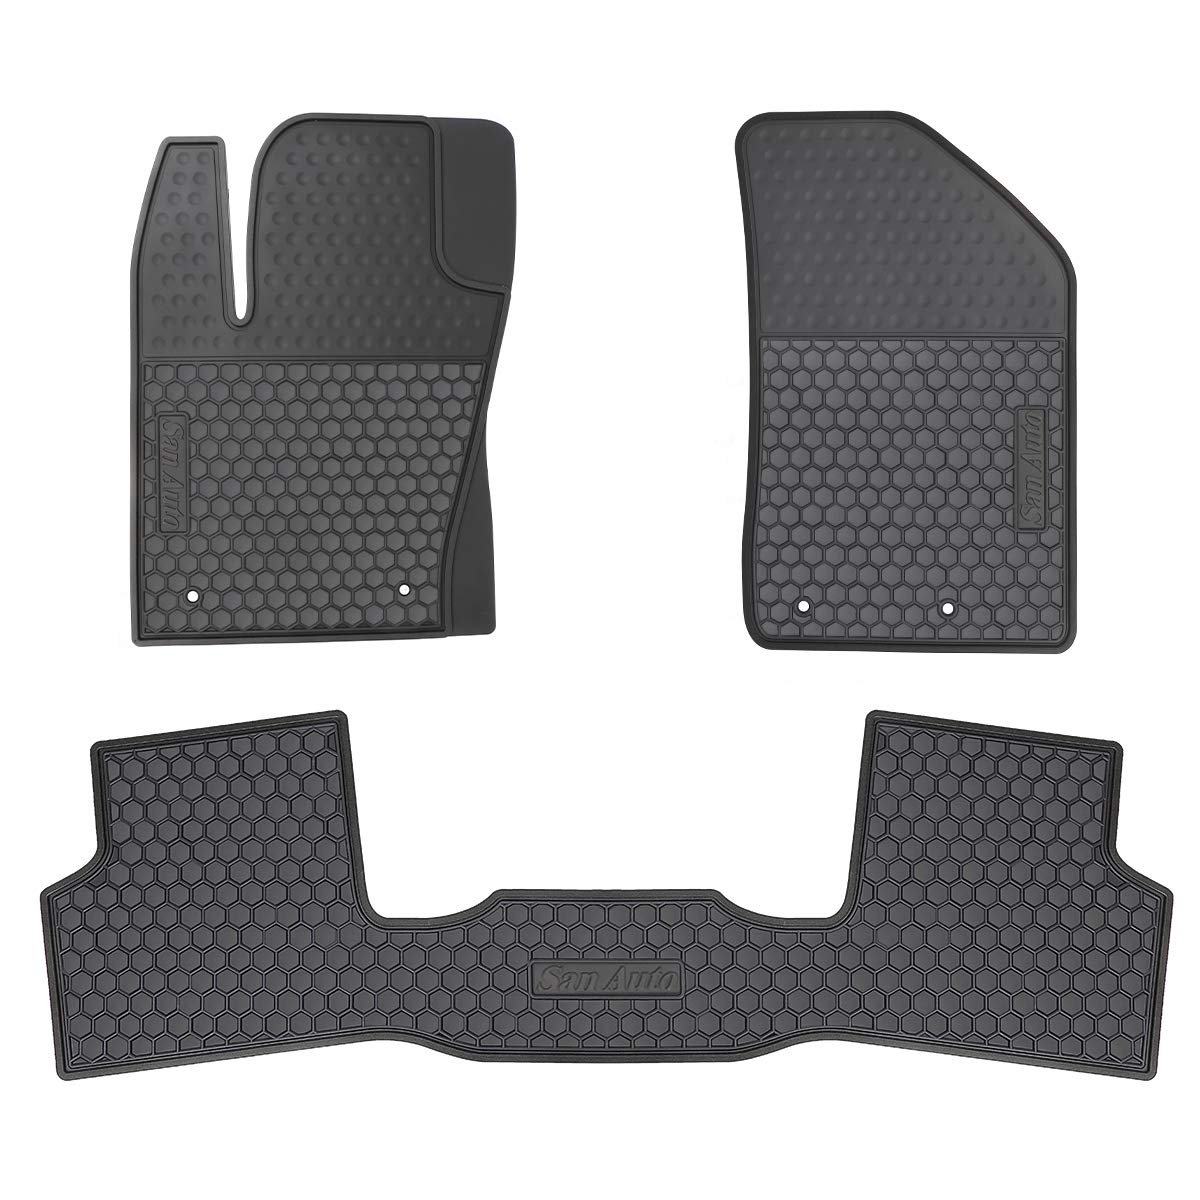 Car Door Check Arm Protection Cover Door Stopper Buckle Stop Cap Rust Protector Door Hinges Cover+Red Reflective Tape For KIA Soul K2 K3 K4 K5 RIO CERATO Forte QUORIS Optima Sportage R